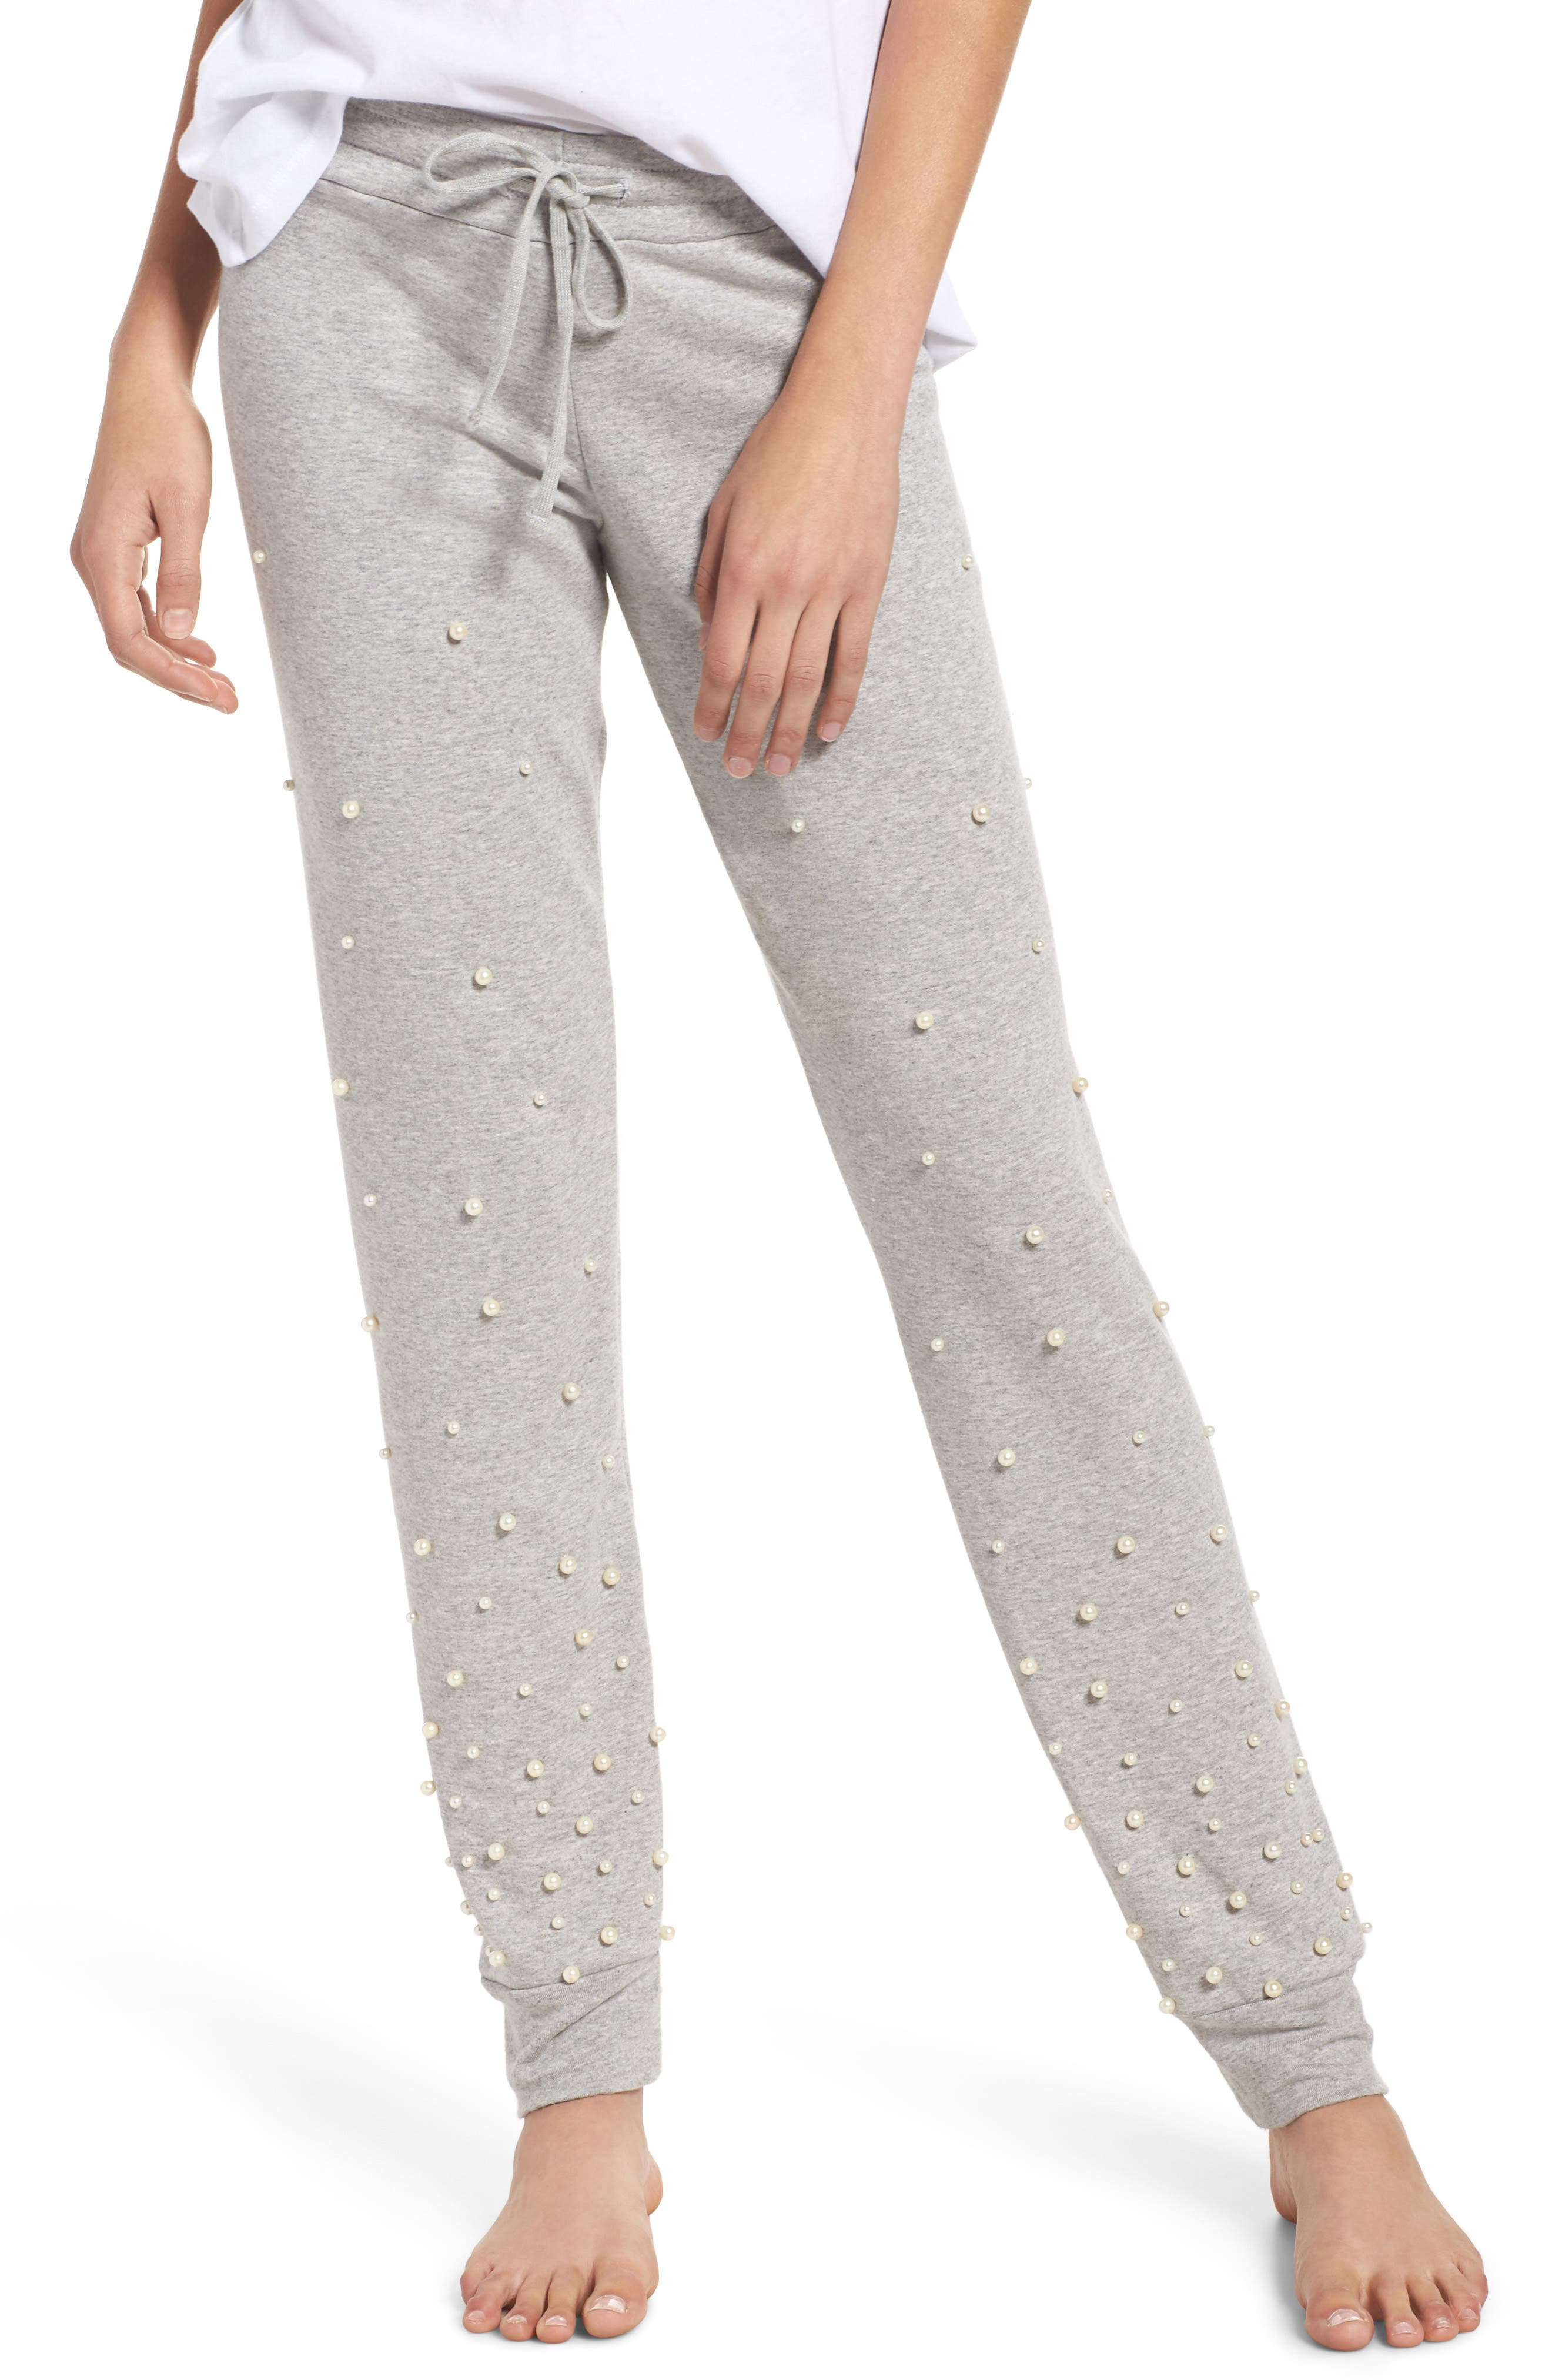 Price Imitation Pearl Embellished Lounge Pants,                             Main thumbnail 1, color,                             035